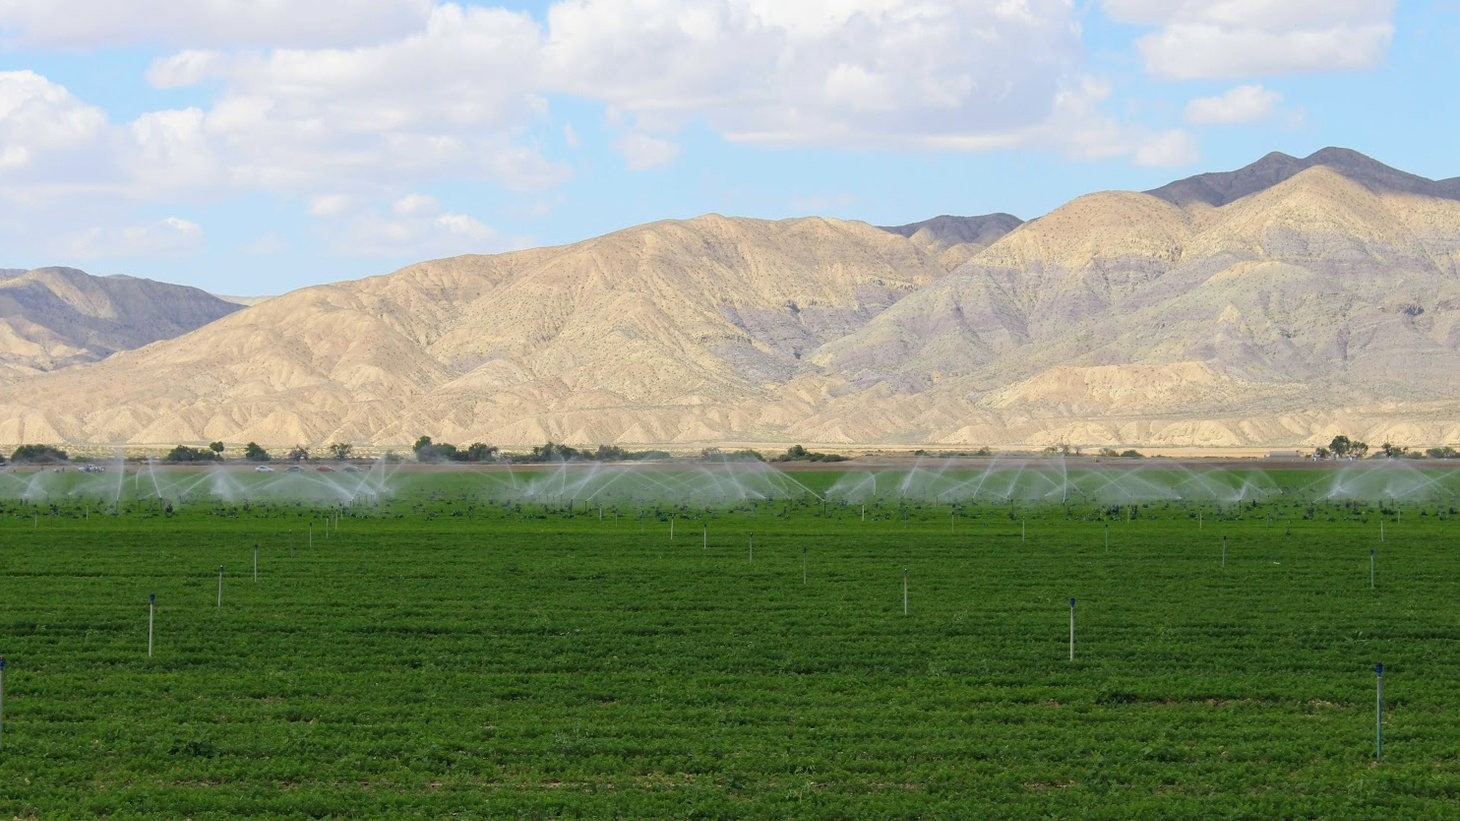 """In California, we talk a lot about water: where it comes from, how much we need, and when it'll dry up. In the Cuyama Valley, which sits in the high desert between Santa Barbara and Bakersfield, """"drying up"""" isn't just an abstract fear."""